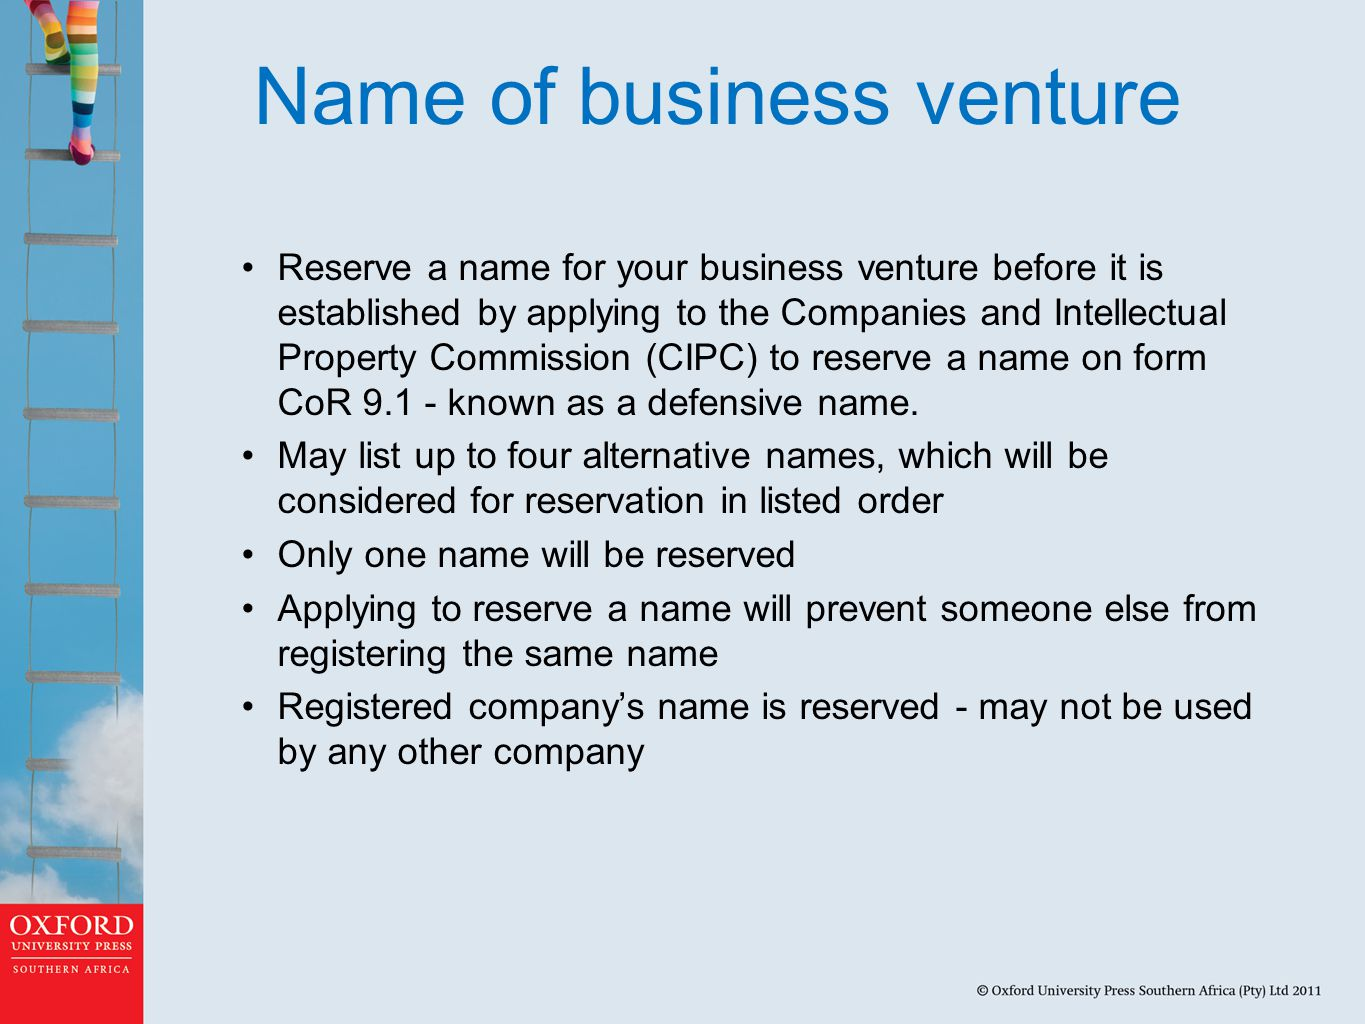 Name of business venture